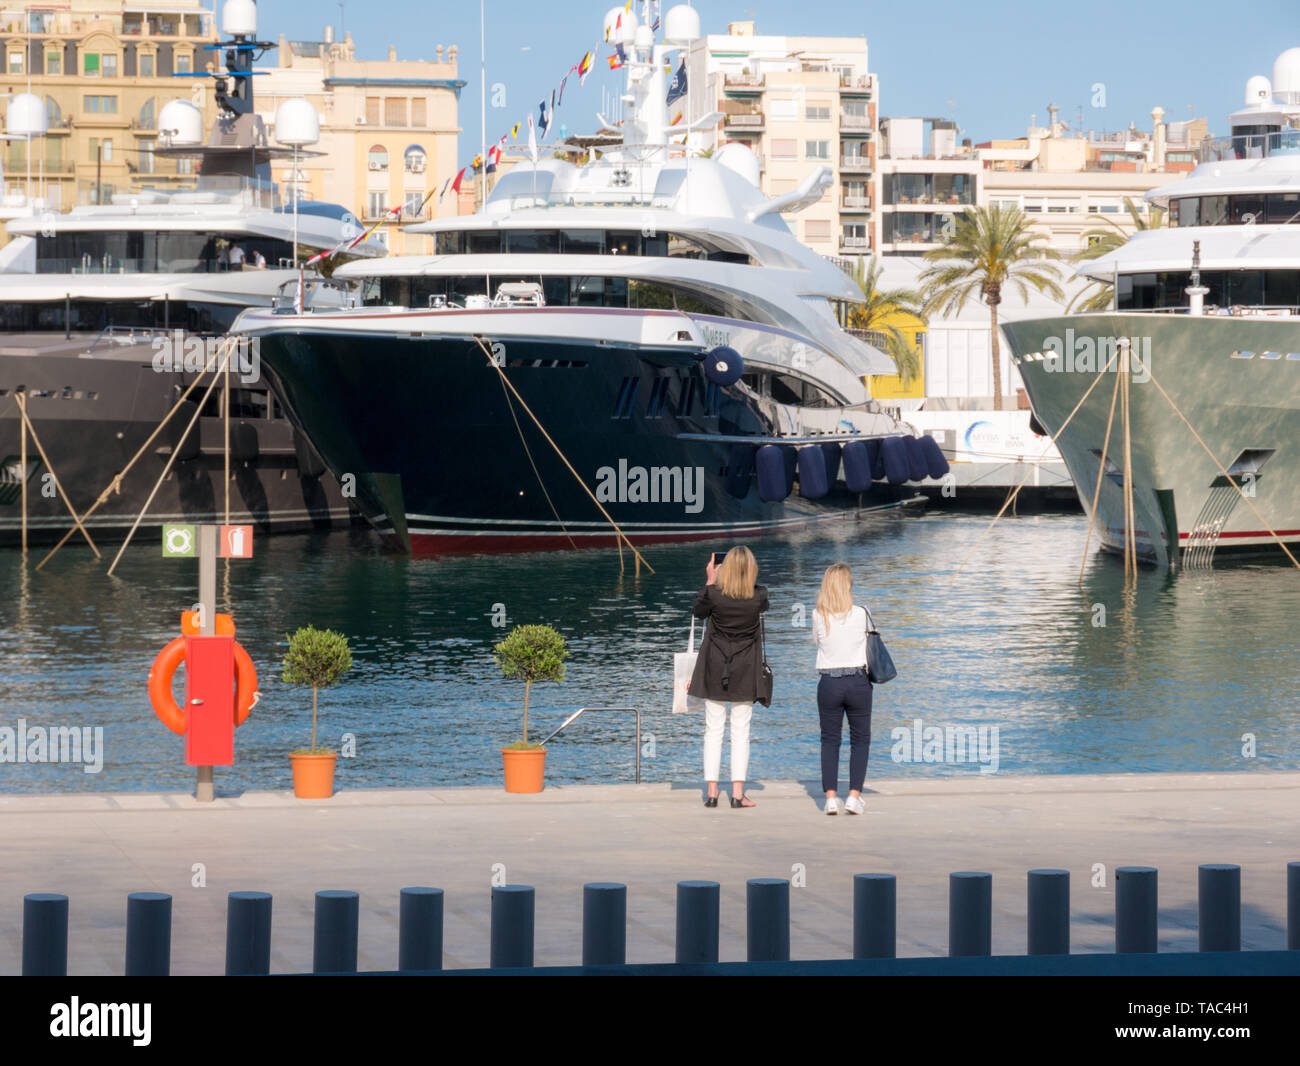 Two women taking luxury yachts in picture - Stock Image